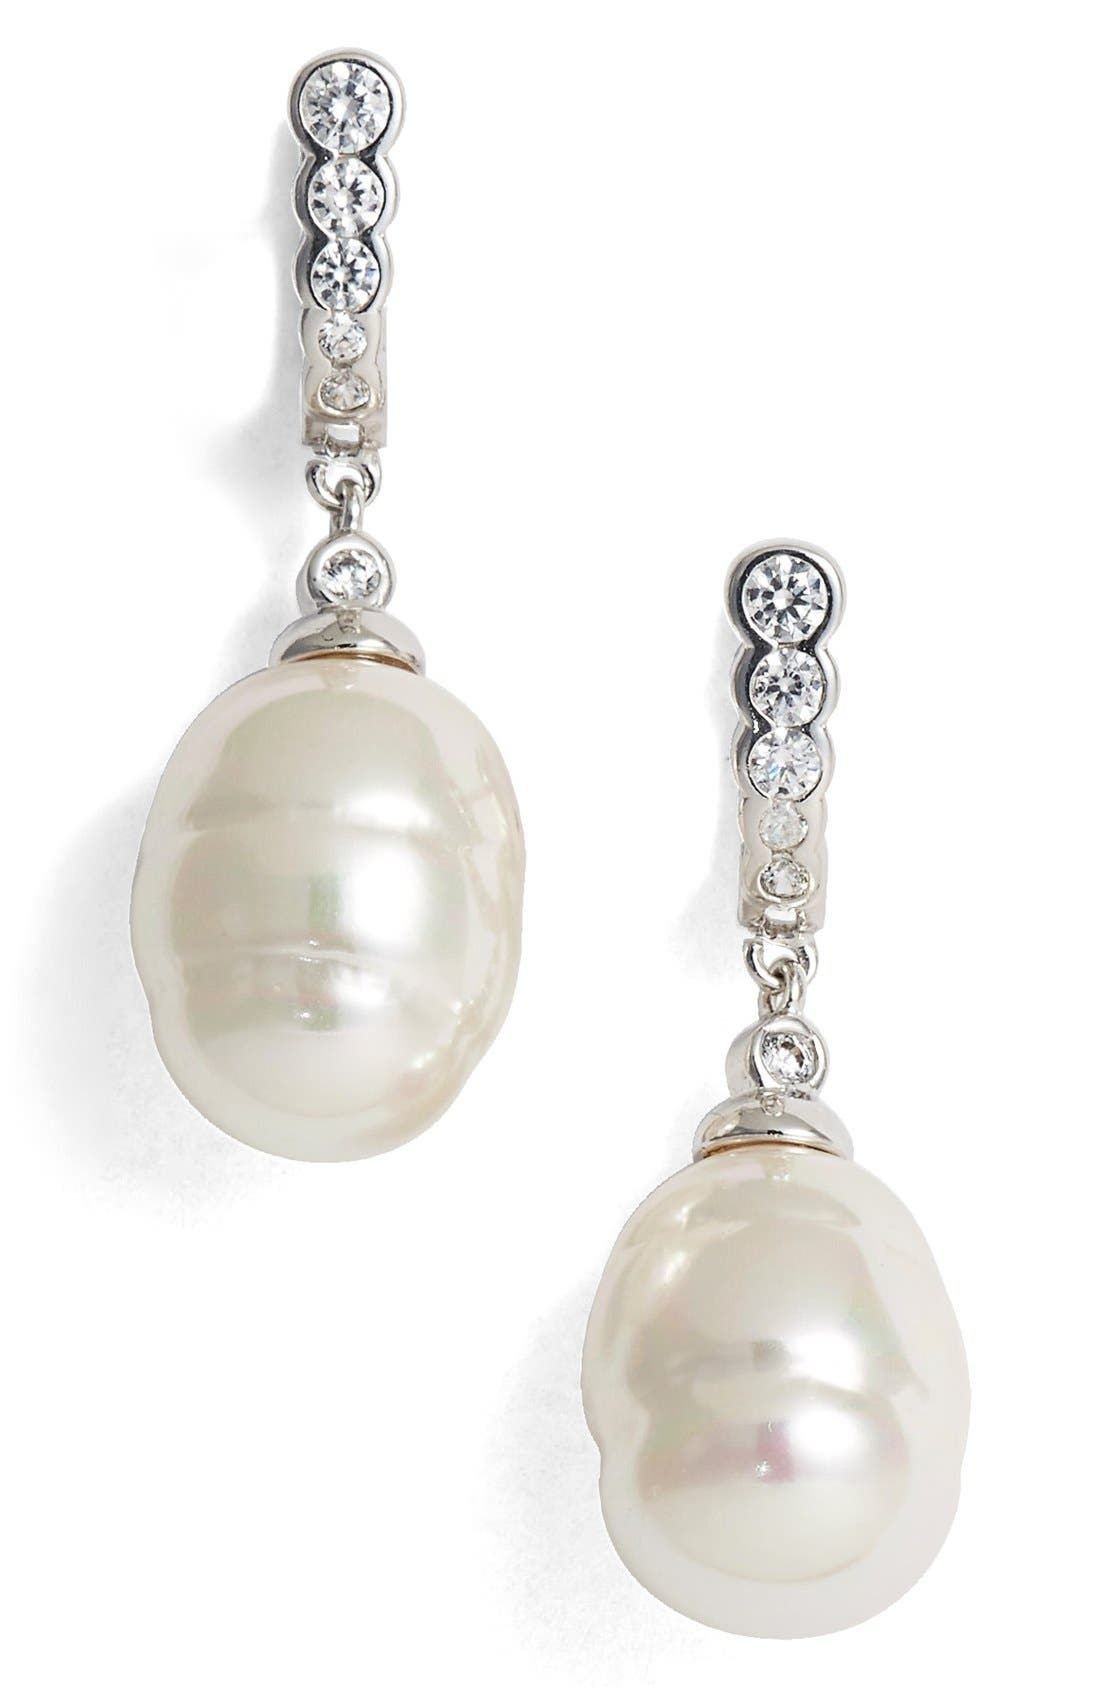 14mm Simulated Baroque Pearl & Cubic Zirconia Drop Earrings,                         Main,                         color, 100